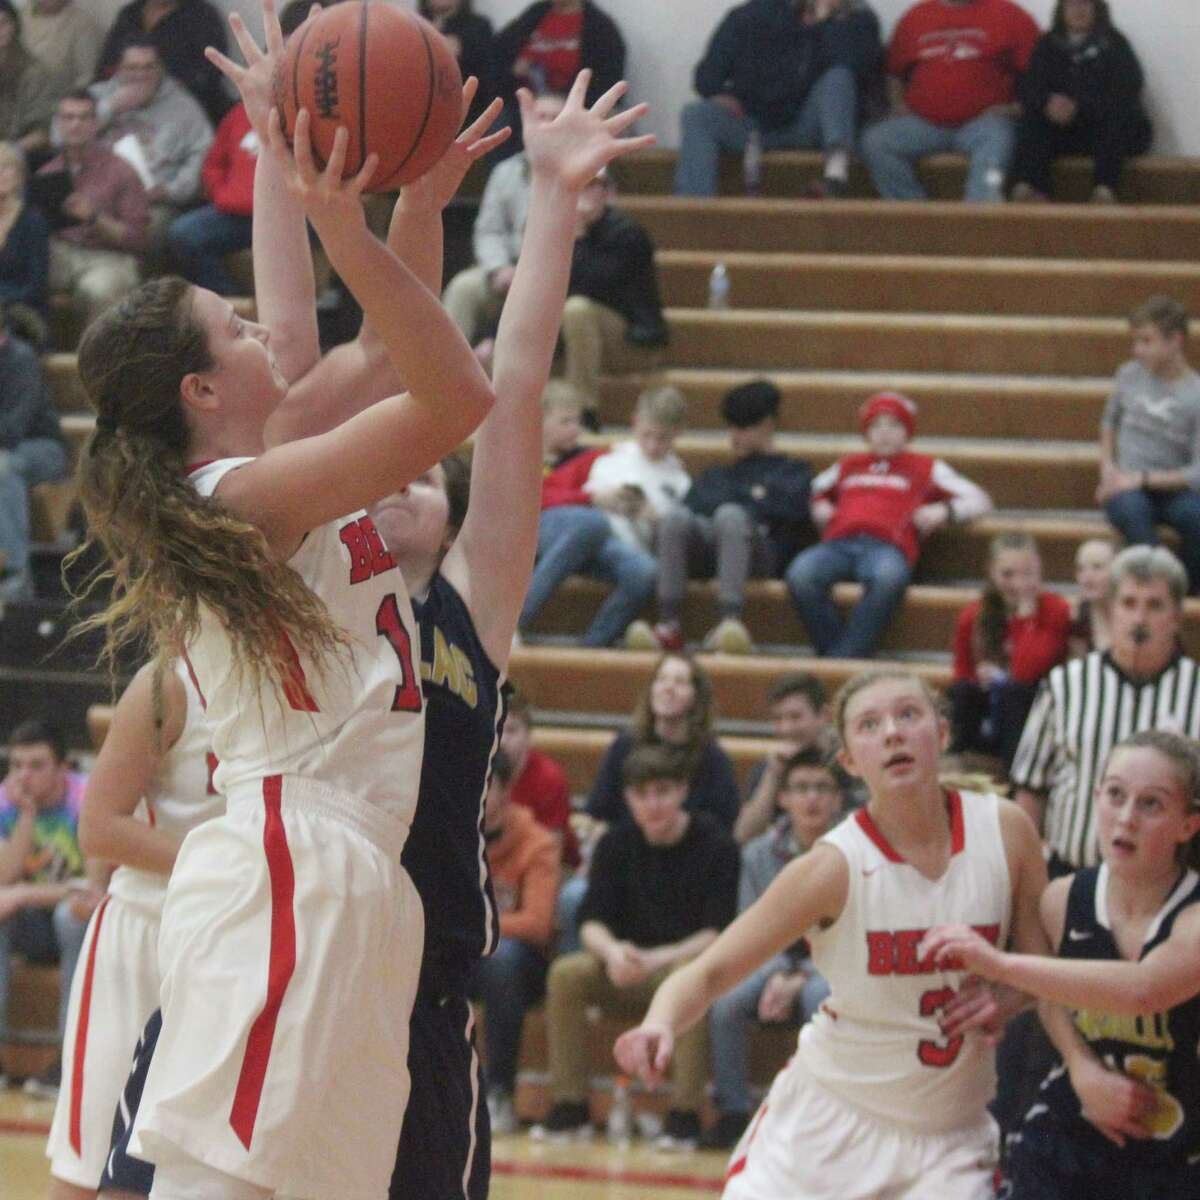 Bella Huddleston (10) powers to the basket during the second half of Benzie Central's loss to Cadillac, while Sierra Pallin (3) tries to box out for a potential rebound. (Photo/Robert Myers)